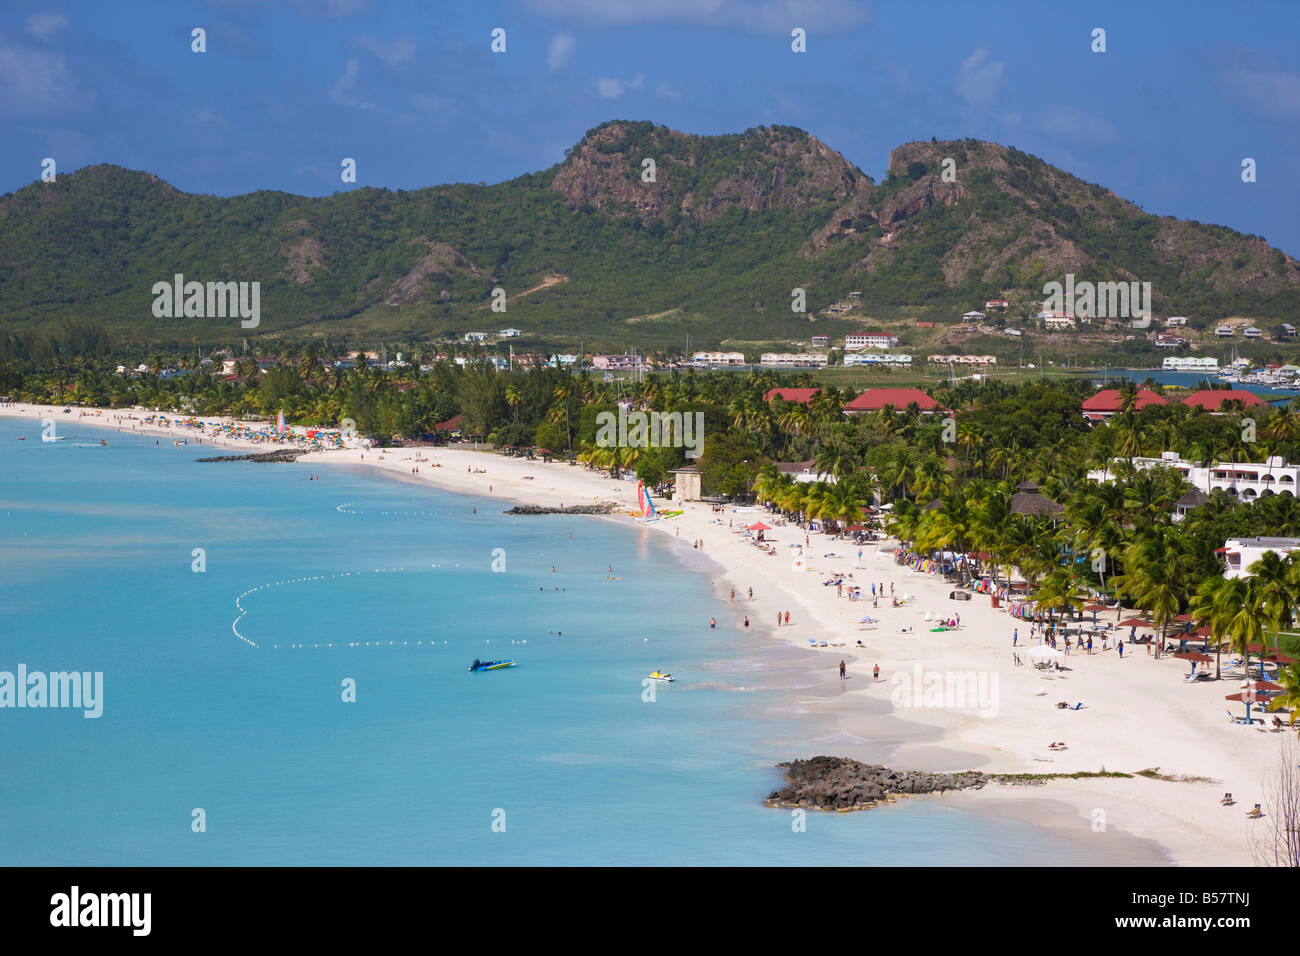 Elevated view over Jolly Harbour and Jolly Beach, Antigua, Leeward Islands, West Indies, Caribbean, Central America Stock Photo